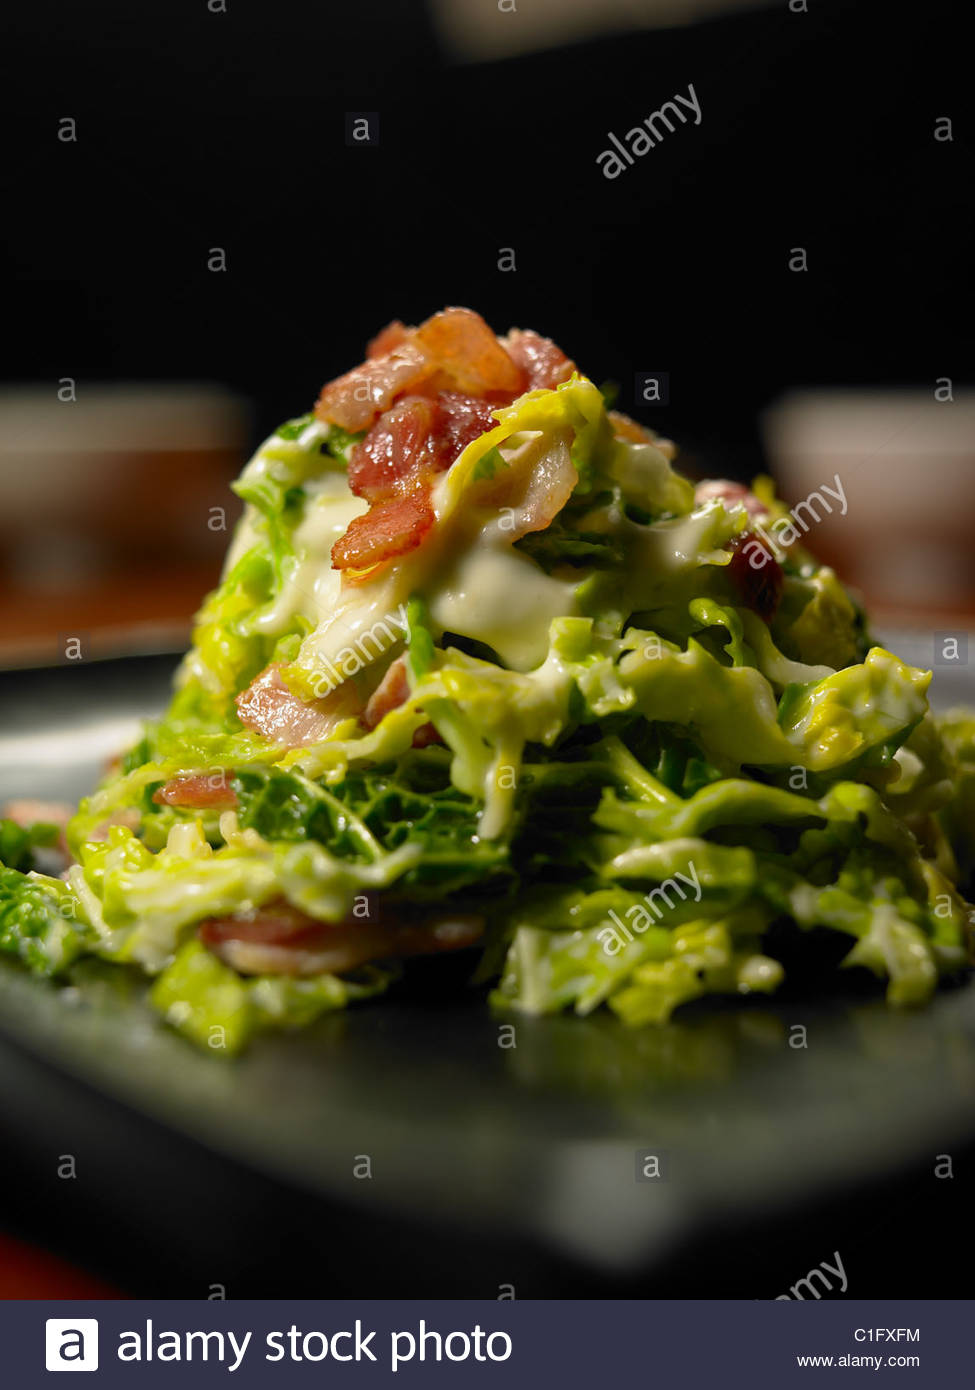 Cabbage and Bacon Side Dish - Stock Image